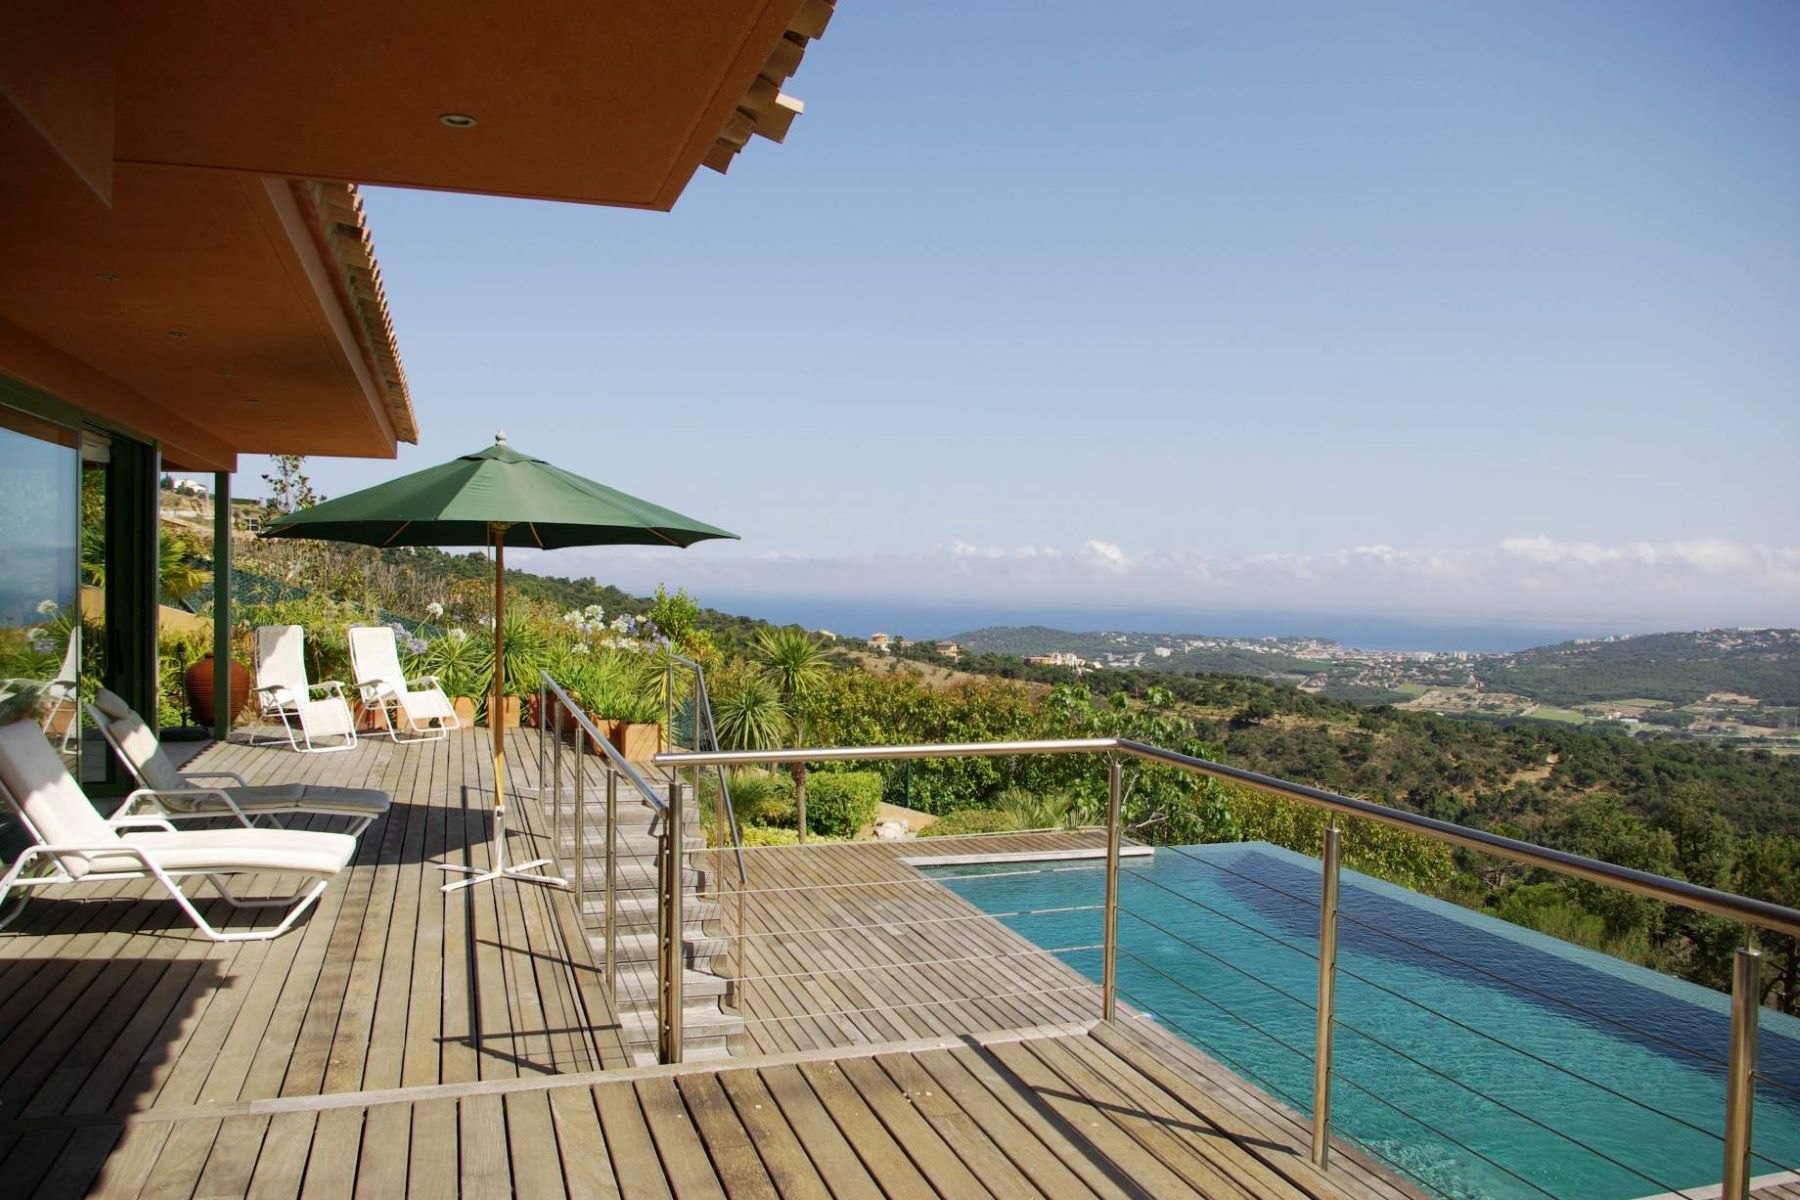 Maison unifamiliale pour l Vente à Villa for sale with amazing panoramic views in Playa de Aro Playa De Aro, Costa Brava, 17250 Espagne